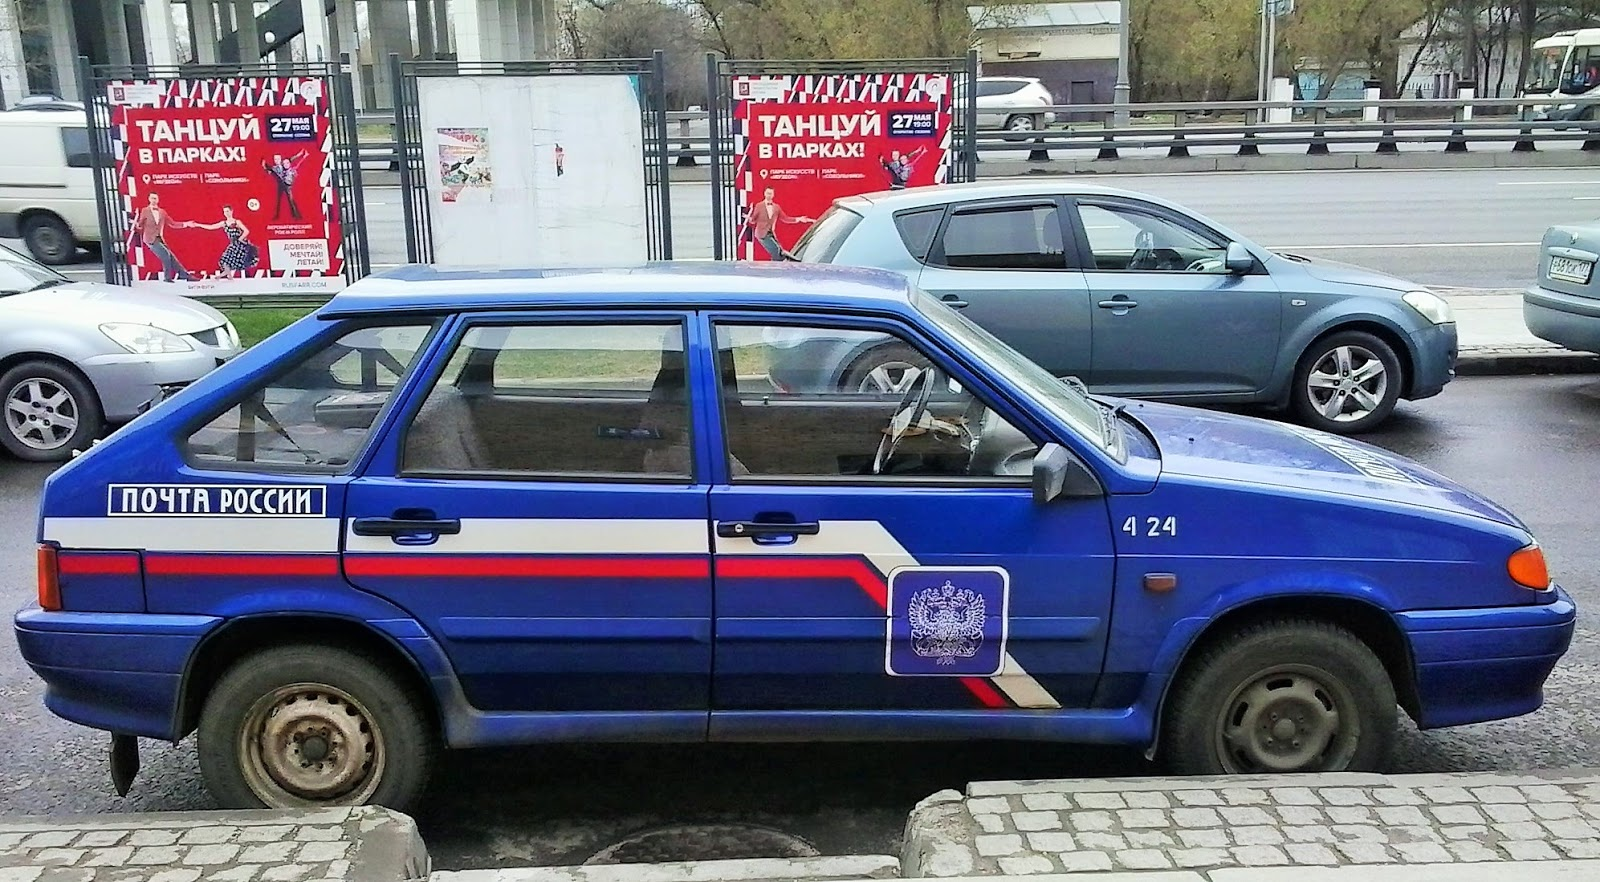 Here is a Lada VAZ-2114, Post (Office) of Russia livery.